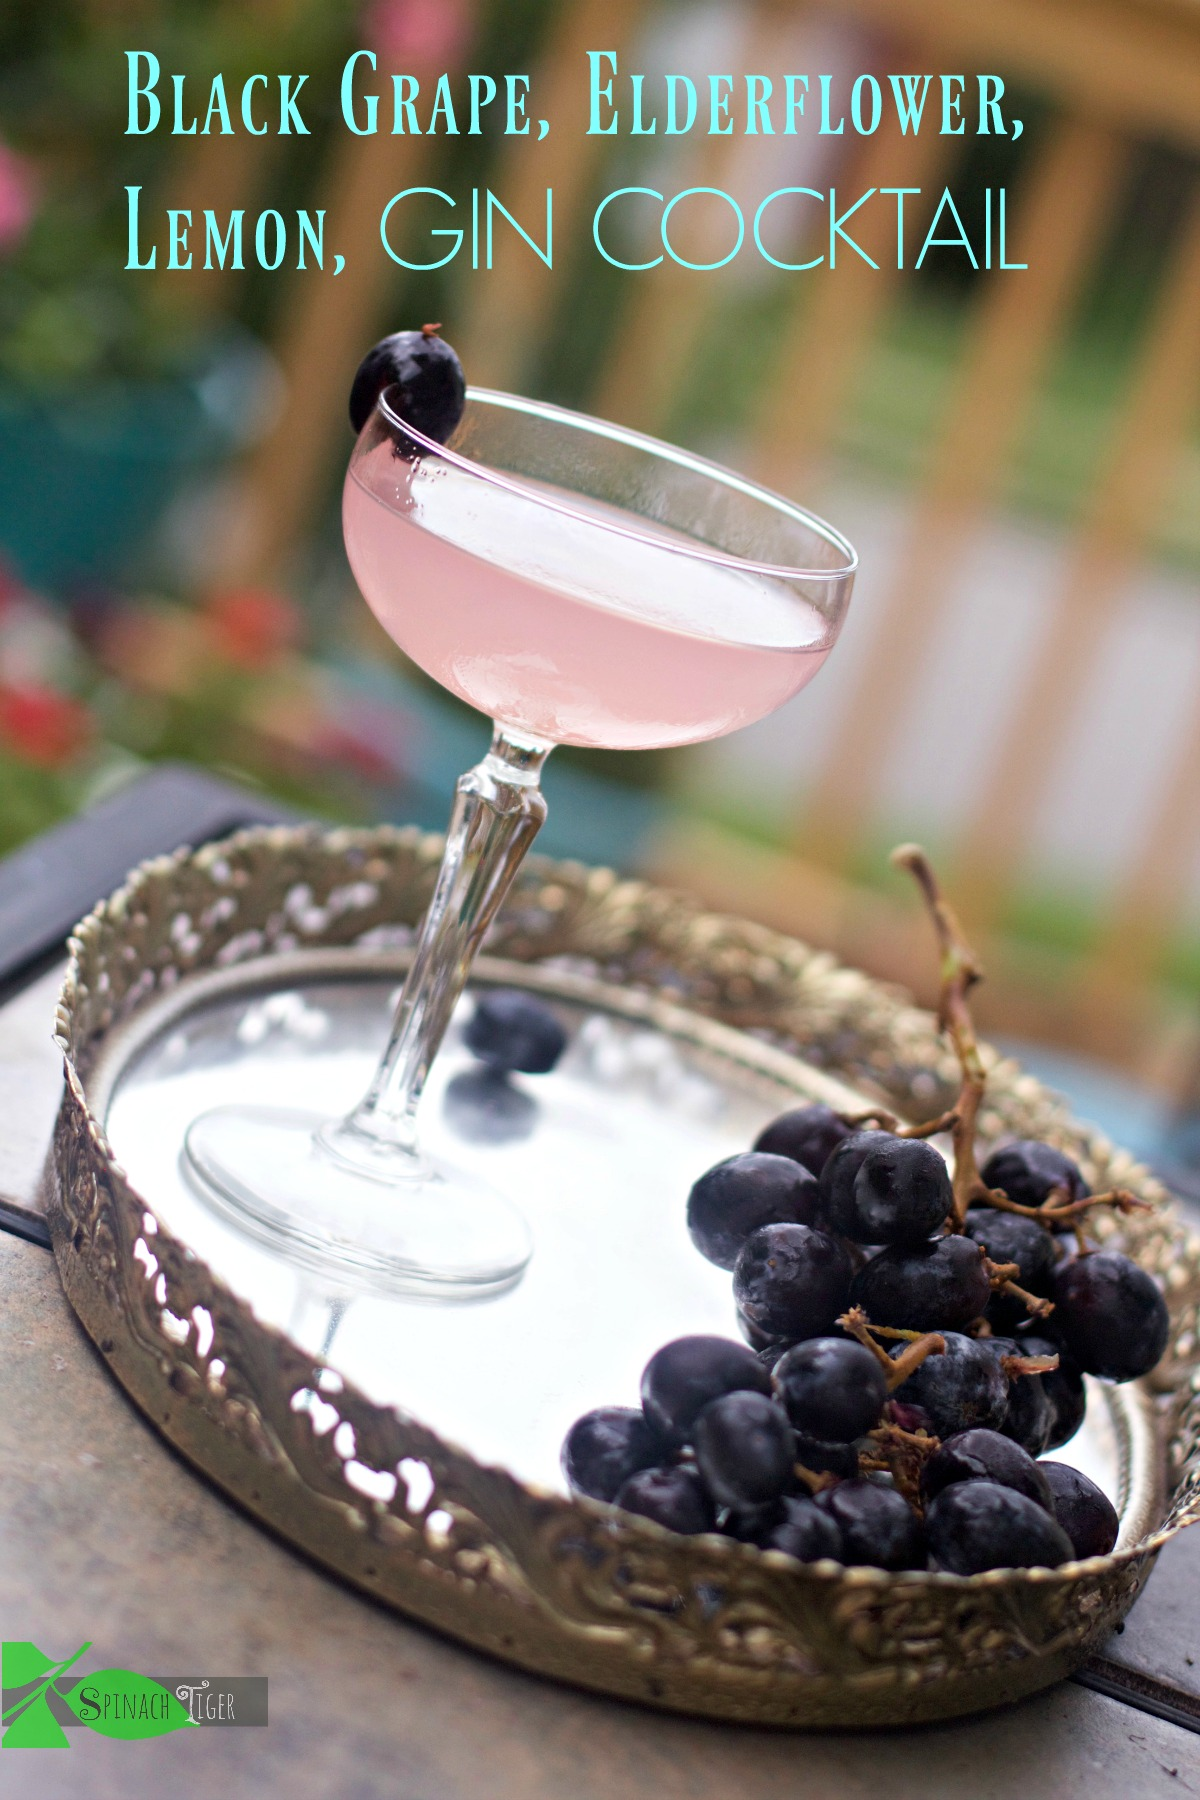 How to Make an elderflower gin cocktail with lemon, black grapes by Spinach Tiger